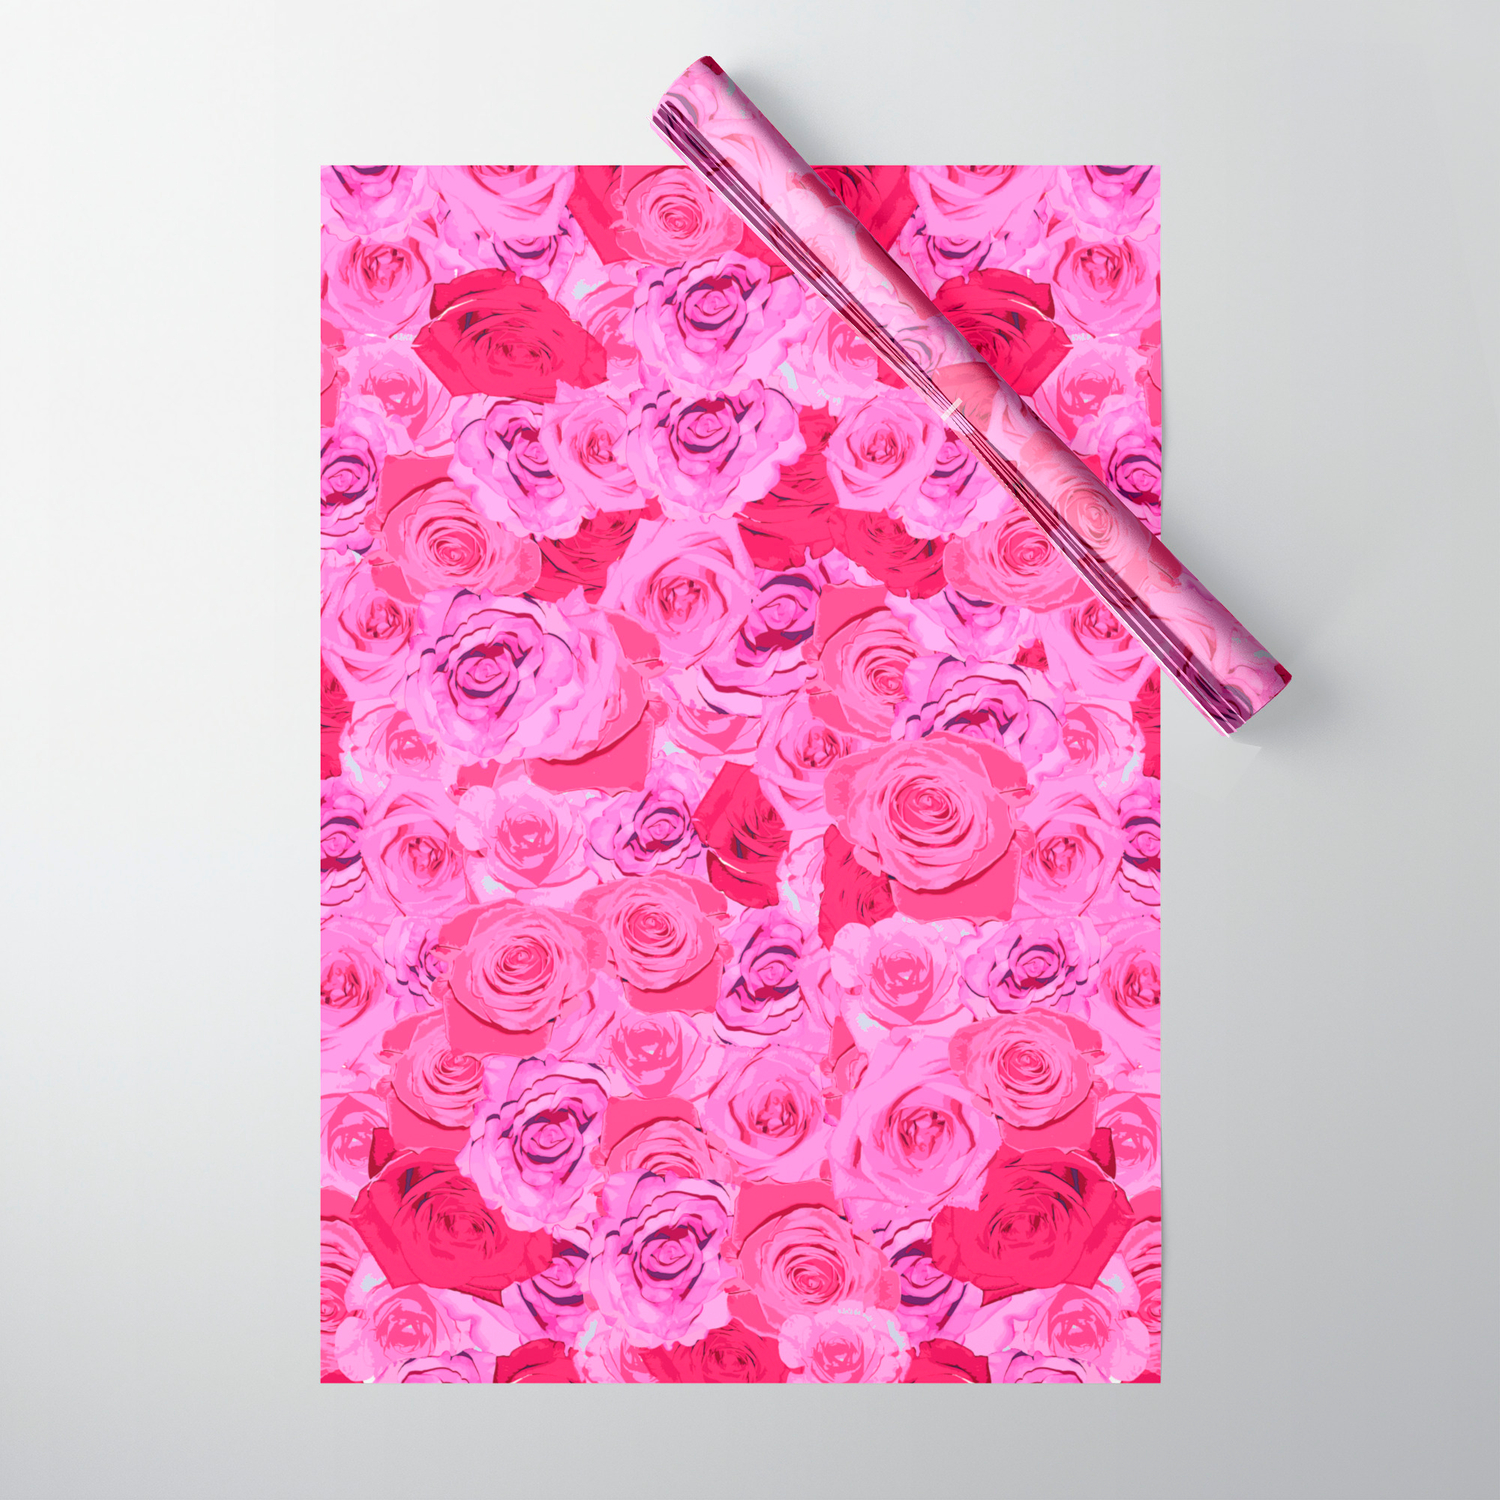 Floral Pink And Red Roses Tumblr Aesthetic Wrapping Paper By